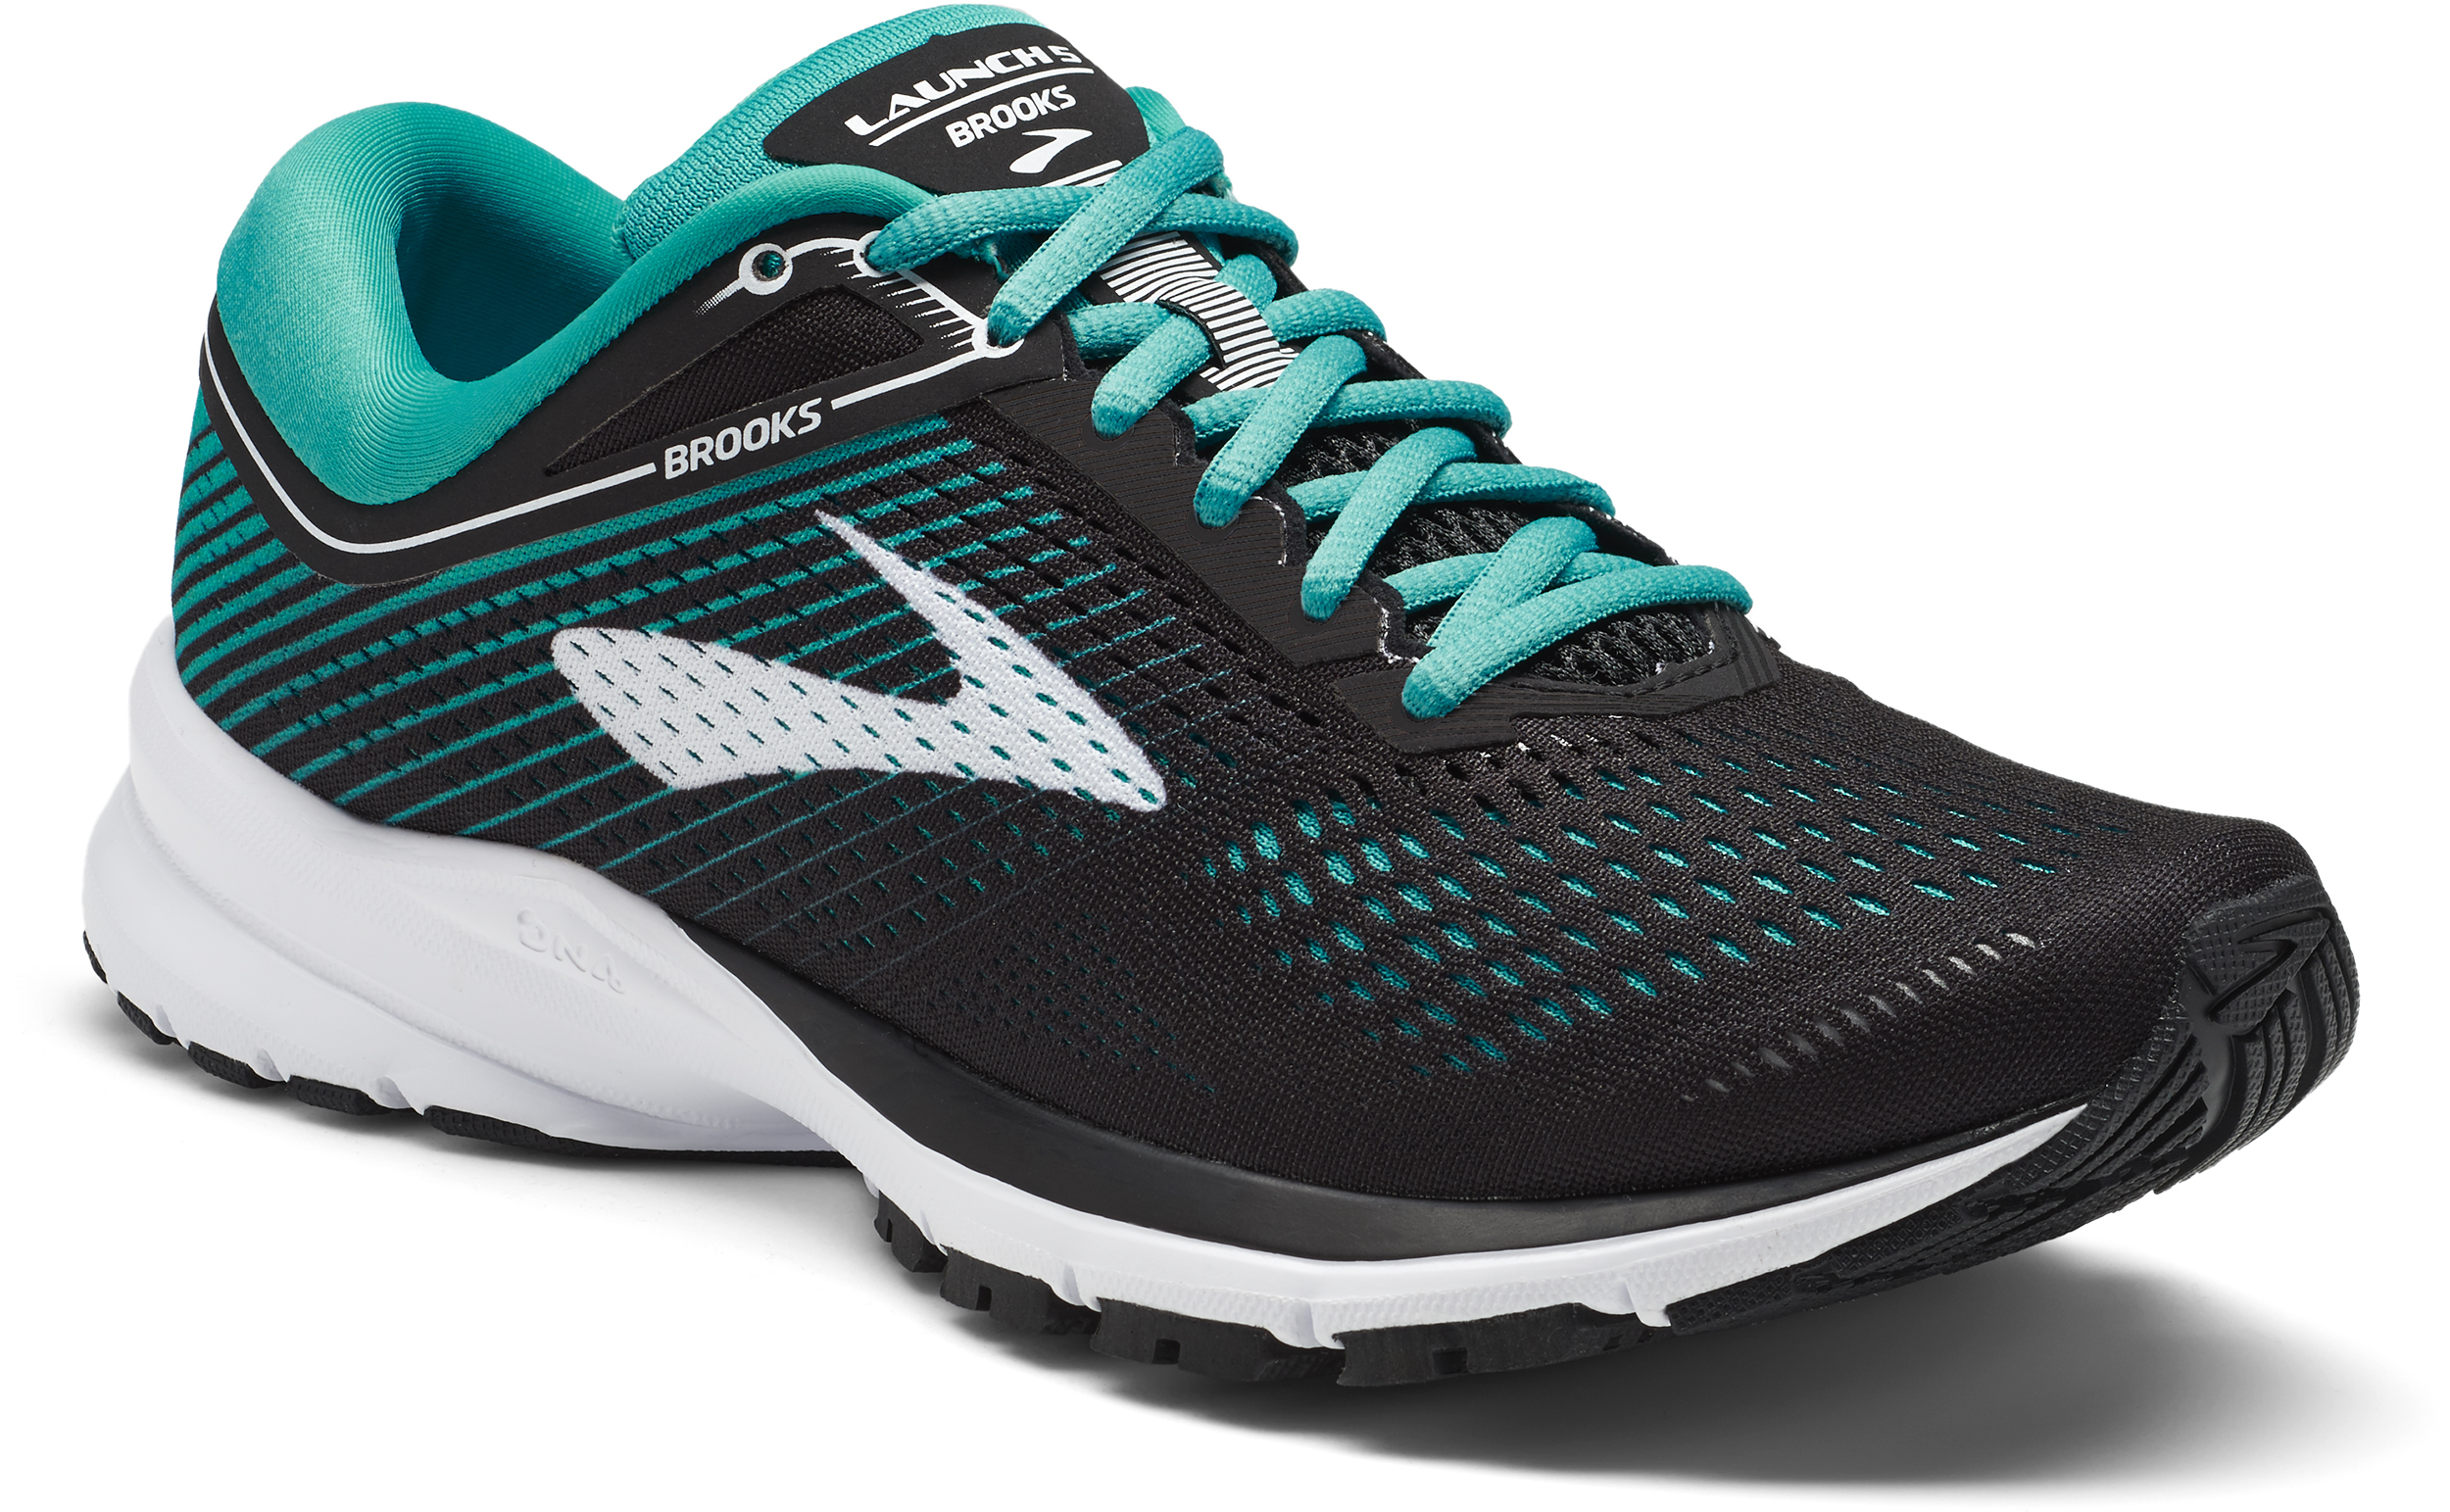 Brooks Launch 5 Road Running Shoes